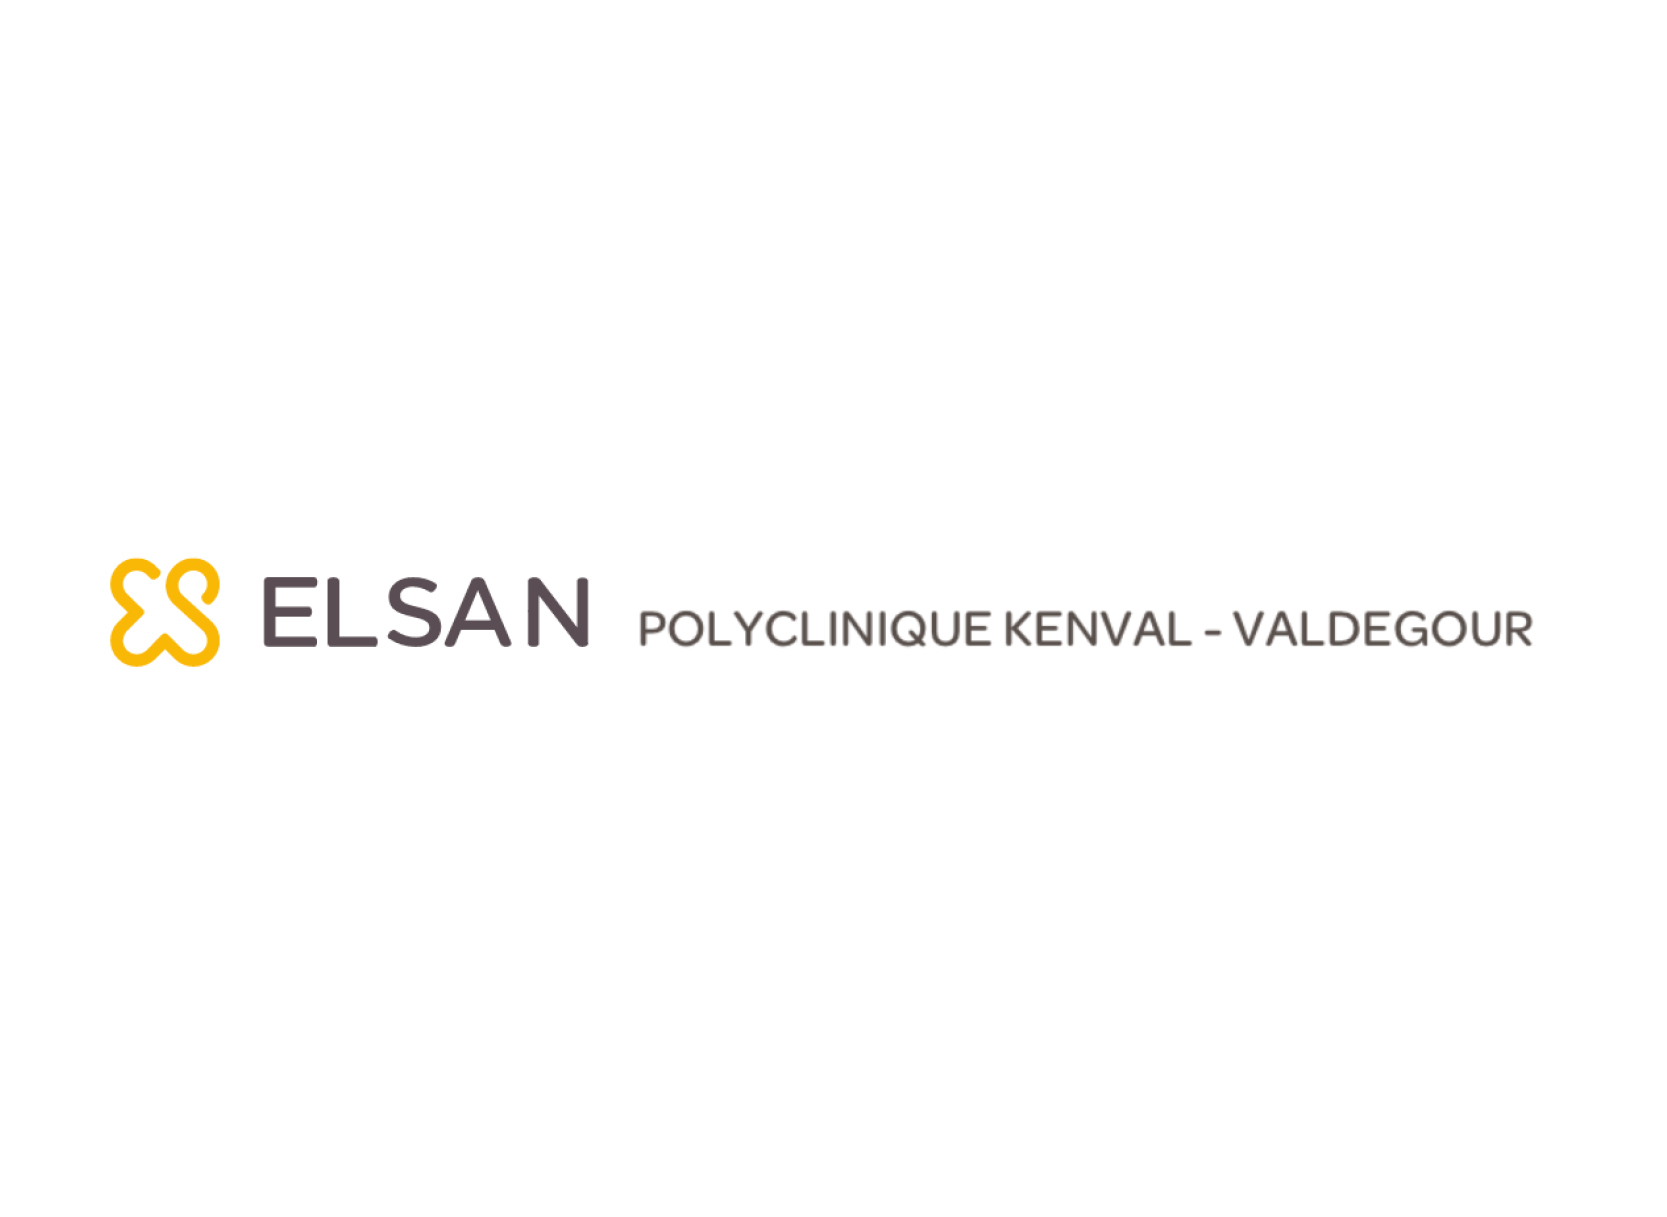 Logo Polyclinique Kenval - ELSAN